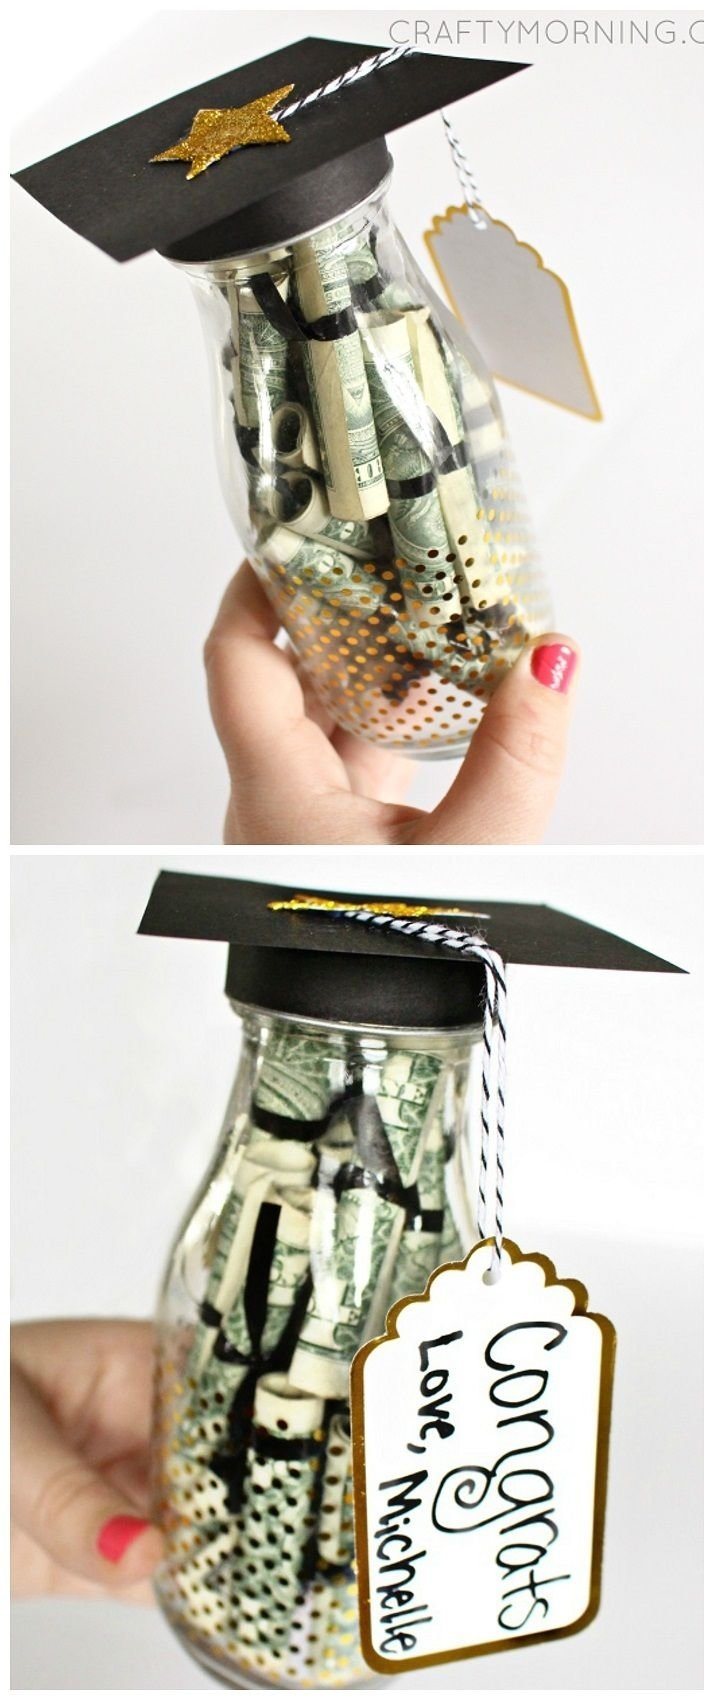 10 Spectacular Middle School Graduation Gift Ideas 276 best graduation gift ideas images on pinterest cute ideas 7 2020